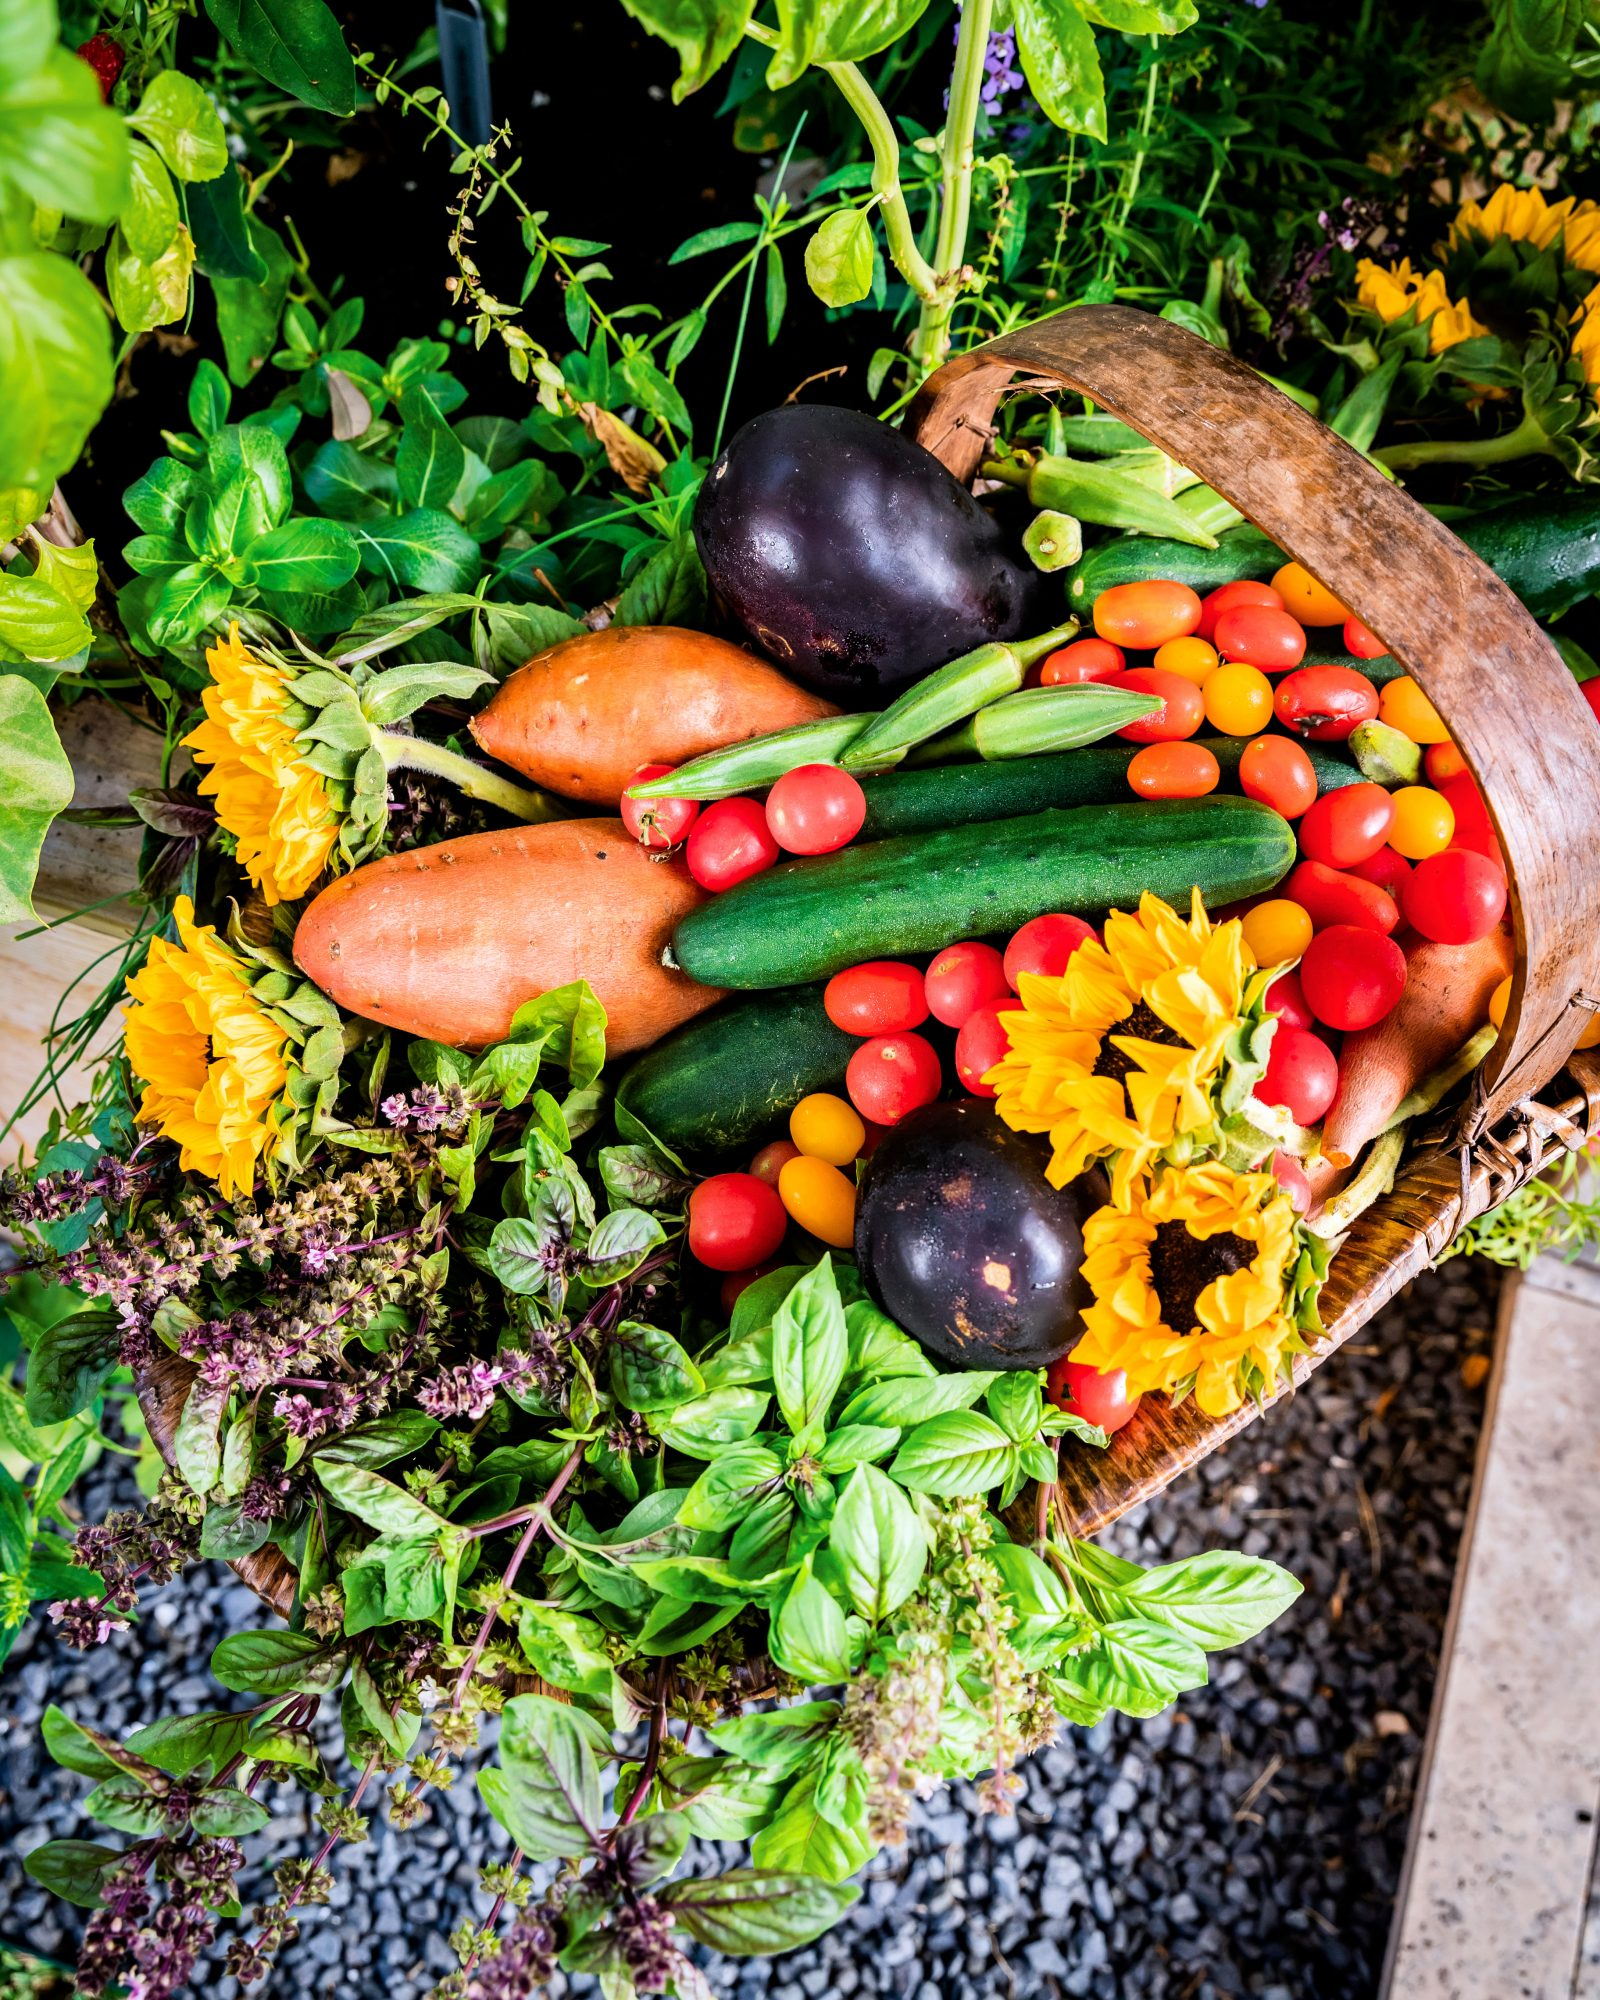 Vegetable and Herb Bounty from Nicole Burke's Kitchen Garden Bed